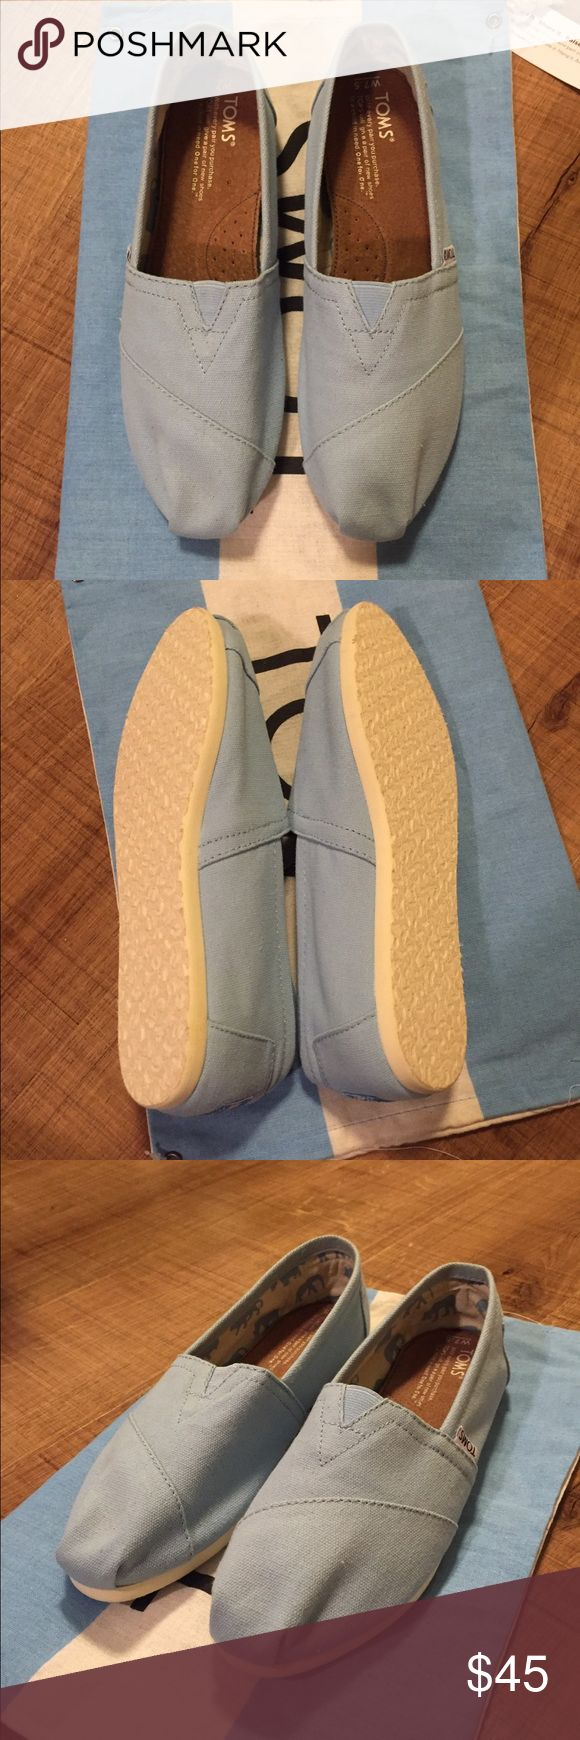 New unworn baby blue TOMS Baby blue toms, that are new and unworn TOMS Shoes Flats & Loafers